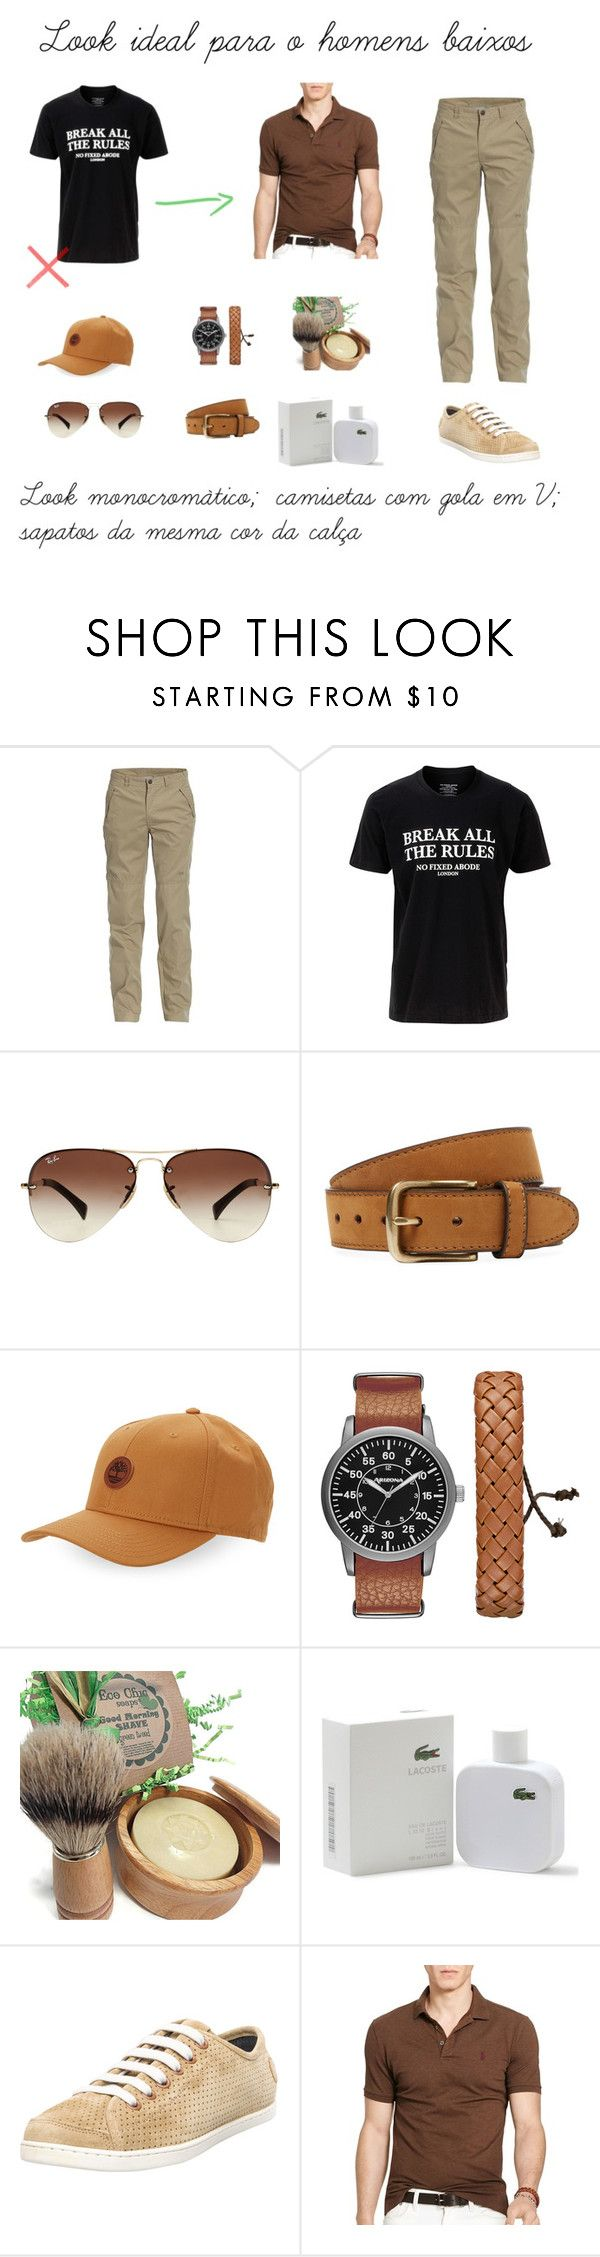 """""""Look ideal para o homem baixo"""" by andresa-maia on Polyvore featuring Jeep, No Fixed Abode, Ray-Ban, Bergè, Timberland, Arizona, Lacoste, Camper, Polo Ralph Lauren e men's fashion"""